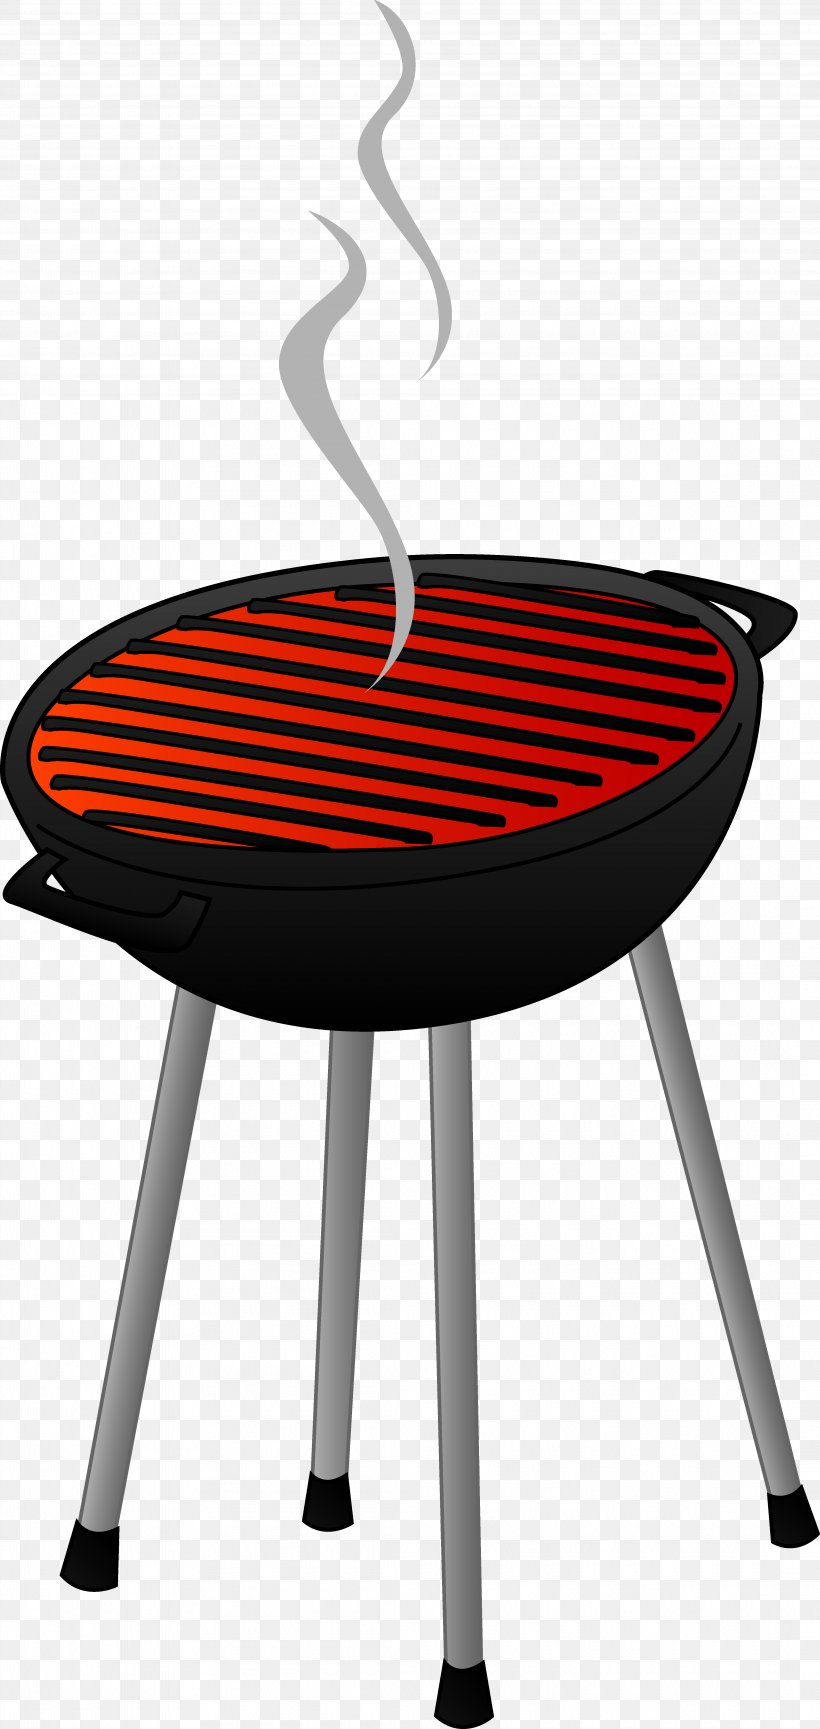 Barbecue Sauce Grilling Clip Art, PNG, 4235x8932px, Barbecue.